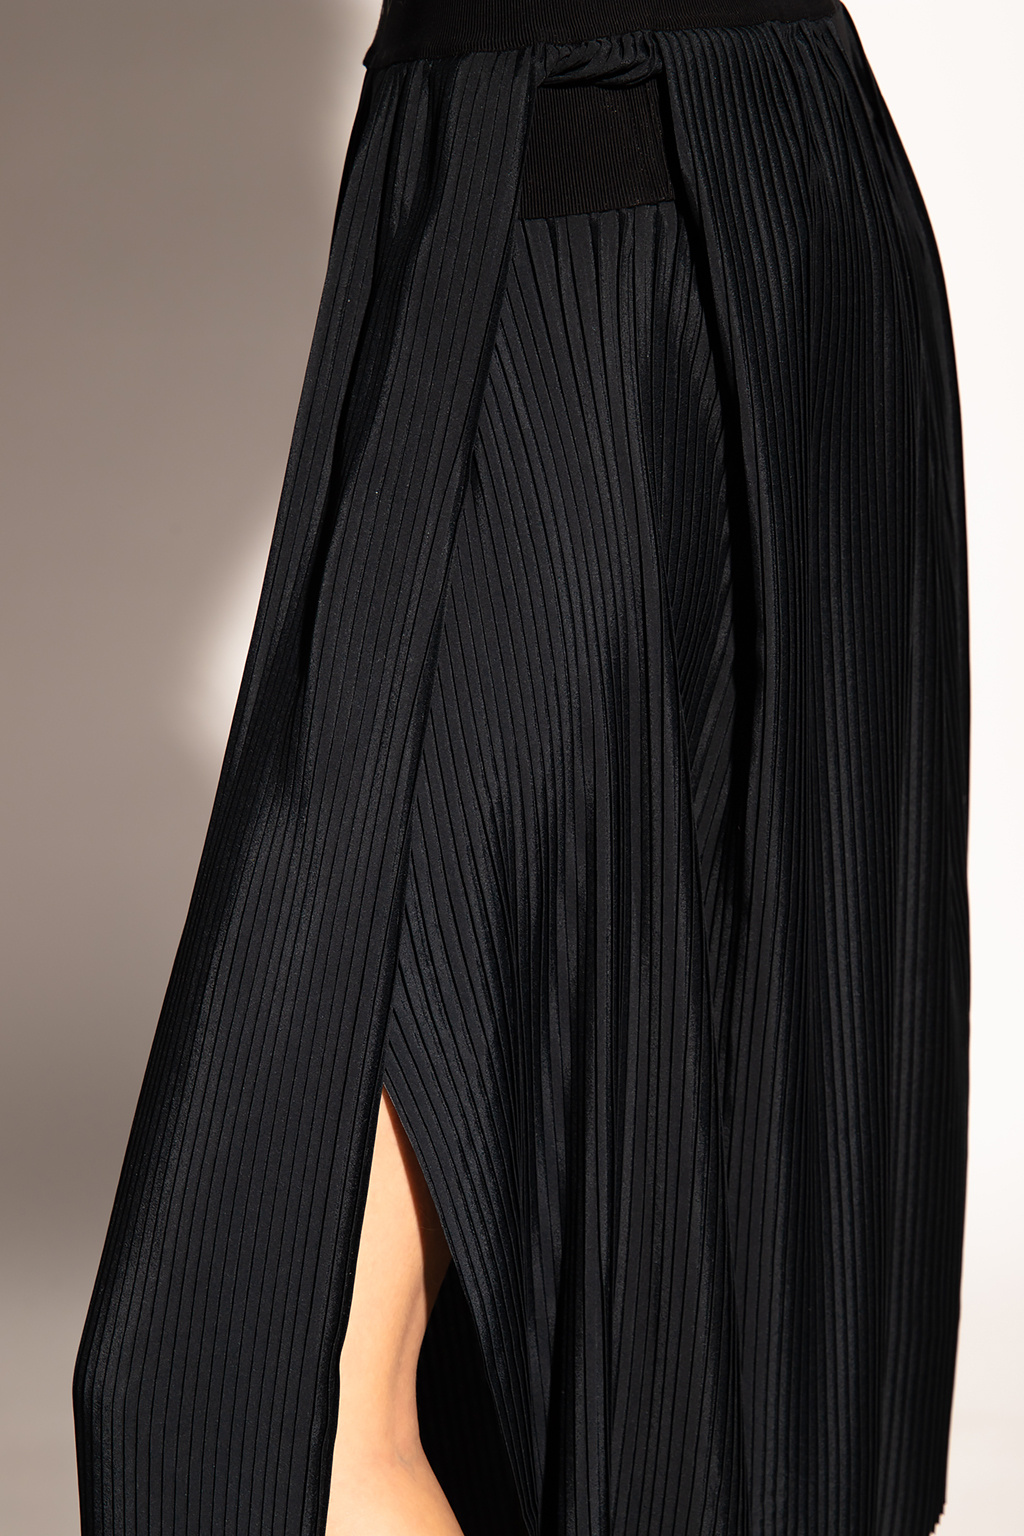 Givenchy Pleated skirt with logo